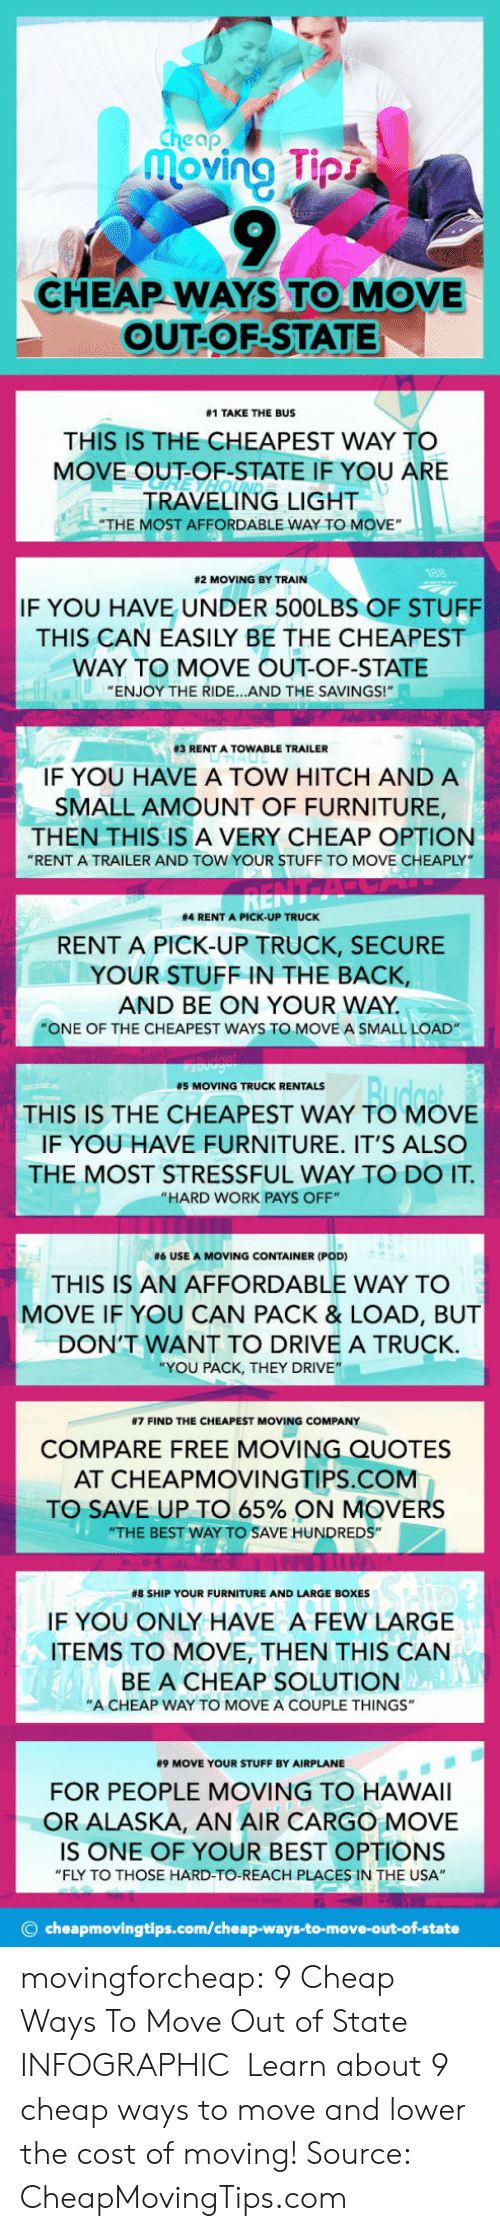 """Tumblr, Work, and Airplane: cheap  oving pr  CHEAP WAYS TO MOVE  OUT-OF-STATE  #1 TAKE THE BUS  THIS IS THE CHEAPEST WAY TO  MOVE OUT-OF-STATE IF YOU A  RE  TRAVELING LIGHT  """"THE MOST AFFORDABLE WAY TO MOVE""""  82 MOVING BY TRAIN  IF YOU HAVE UNDER 500LBS OF STUFF  THIS CAN EASILY BE THE CHEAPEST  WAY TO MOVE OUT-OF-STATE  ENJOY THE RIDE...AND THE SAVINGS!  83 RENT A TOW ABLE TRAILER  IF YOU HAVE A TOW HITCH AND A  SMALL AMOUNT OF FURNITURE,  THEN THIS IS A VERY CHEAP OPTION  """"RENT A TRAILER AND TOW YOUR STUFF TO MOVE CHEAPLY  #4 RENT A PICK-UP TRUCK  RENT A PICK-UP TRUCK, SECURE  YOUR STUFF IN THE BACK,  AND BE ON YOUR WAY  """"ONE OF THE CHEAPEST WAYS TO MOVE A SMALL LOAD  #5 MOVING TRUCK RENTALS  THIS IS THE CHEAPEST WAY TO MOVE  IF YOU HAVE FURNITURE. IT'S ALSO  THE MOST STRESSFUL WAY TO DO IT  """"HARD WORK PAYS OFF""""  #6 USE A MOVING CONTAINER (POD)  THIS IS AN AFFORDABLE WAY TO  MOVE IF YOU CAN PACK & LOAD, BUT  DON'T WANT TO DRIVE A TRUCK  YOU PACK, THEY DRIVE""""  #7 FIND THE CHEAPEST MOVING COMPANY  COMPARE FREE MOVING QUOTES  AT CHEAPMOVINGTIPS.COM  TO SAVE UP TO 65% ON MOVERS  """"THE BEST WAY TO SAVE HUNDREDS""""  #8 SHIP YOUR FURNITURE AND LARGE BOXES  IF YOU ONLY HAVE A FEW LARGE  ITEMS TO MOVE, THEN THIS CAN  BE A CHEAP SOLUTION  """"A CHEAP WAY TO MOVE A COUPLE THINGS""""  #9 MOVE YOUR STUFF BY AIRPLANE  FOR PEOPLE MOVING TO HAWAlI  OR ALASKA, AN AIR CARGO MOVE  IS ONE OF YOUR BEST OPTIONS  """"FLY TO THOSE HARD-TO-REACH PLACES IN THE USA""""  © cheapmovingtips.com/cheap-ways-to-move-out-of-state movingforcheap: 9 Cheap Ways To Move Out of State INFOGRAPHIC   Learn about 9 cheap ways to move and lower the cost of moving!  Source: CheapMovingTips.com"""